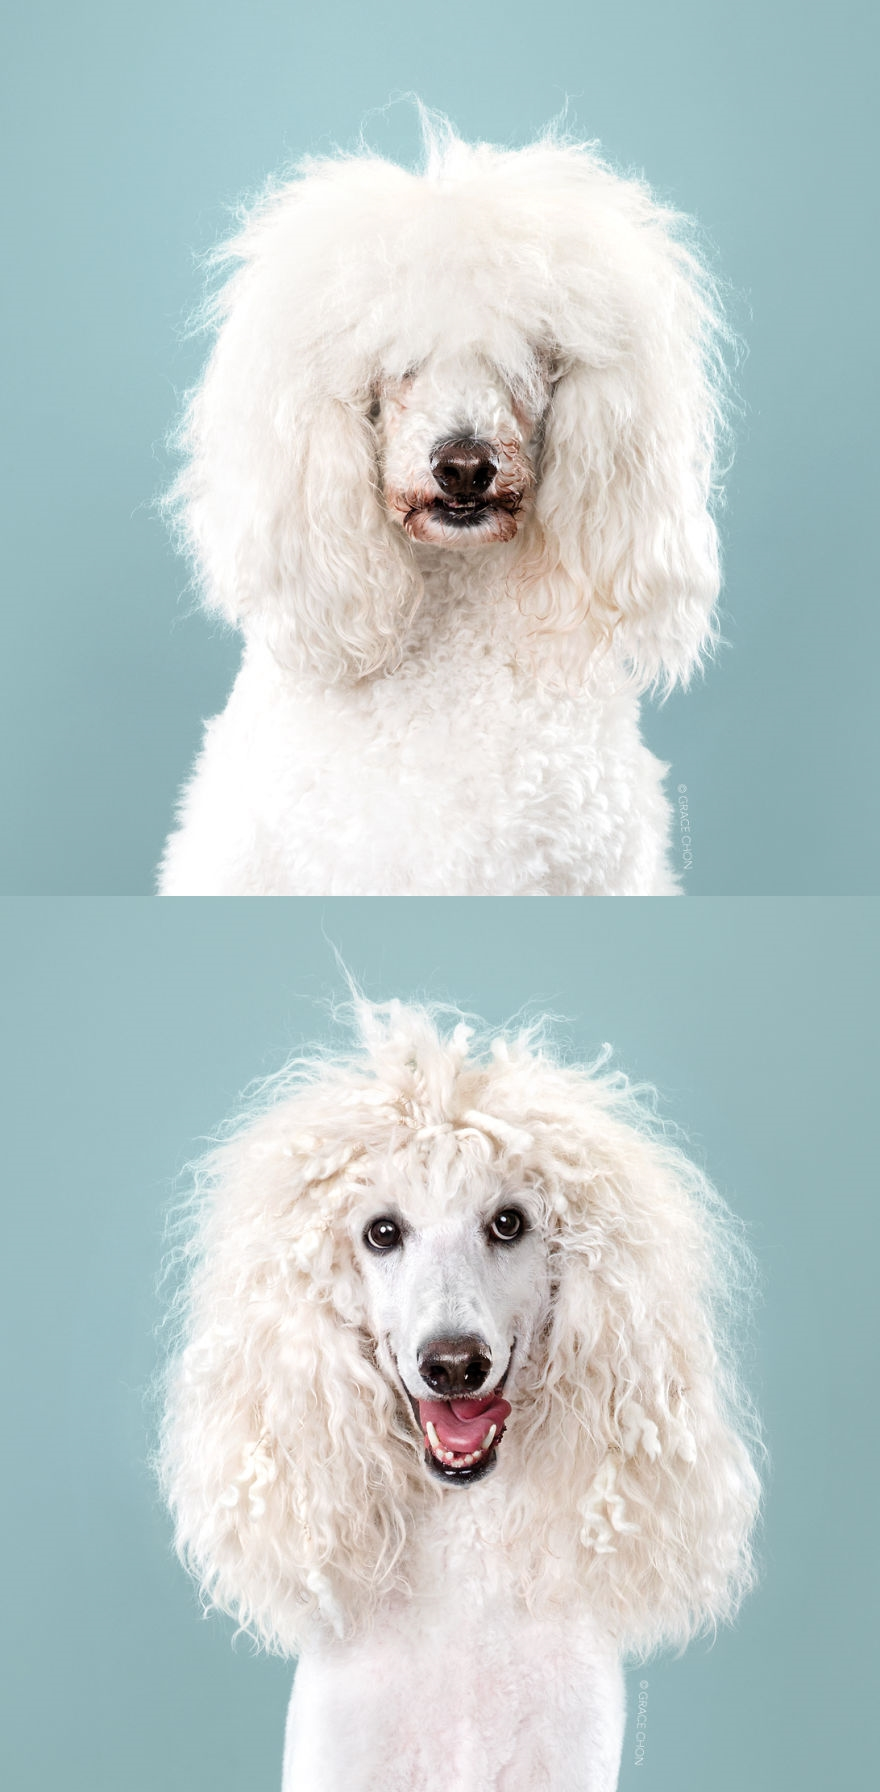 dogs-before-and-after-their-h